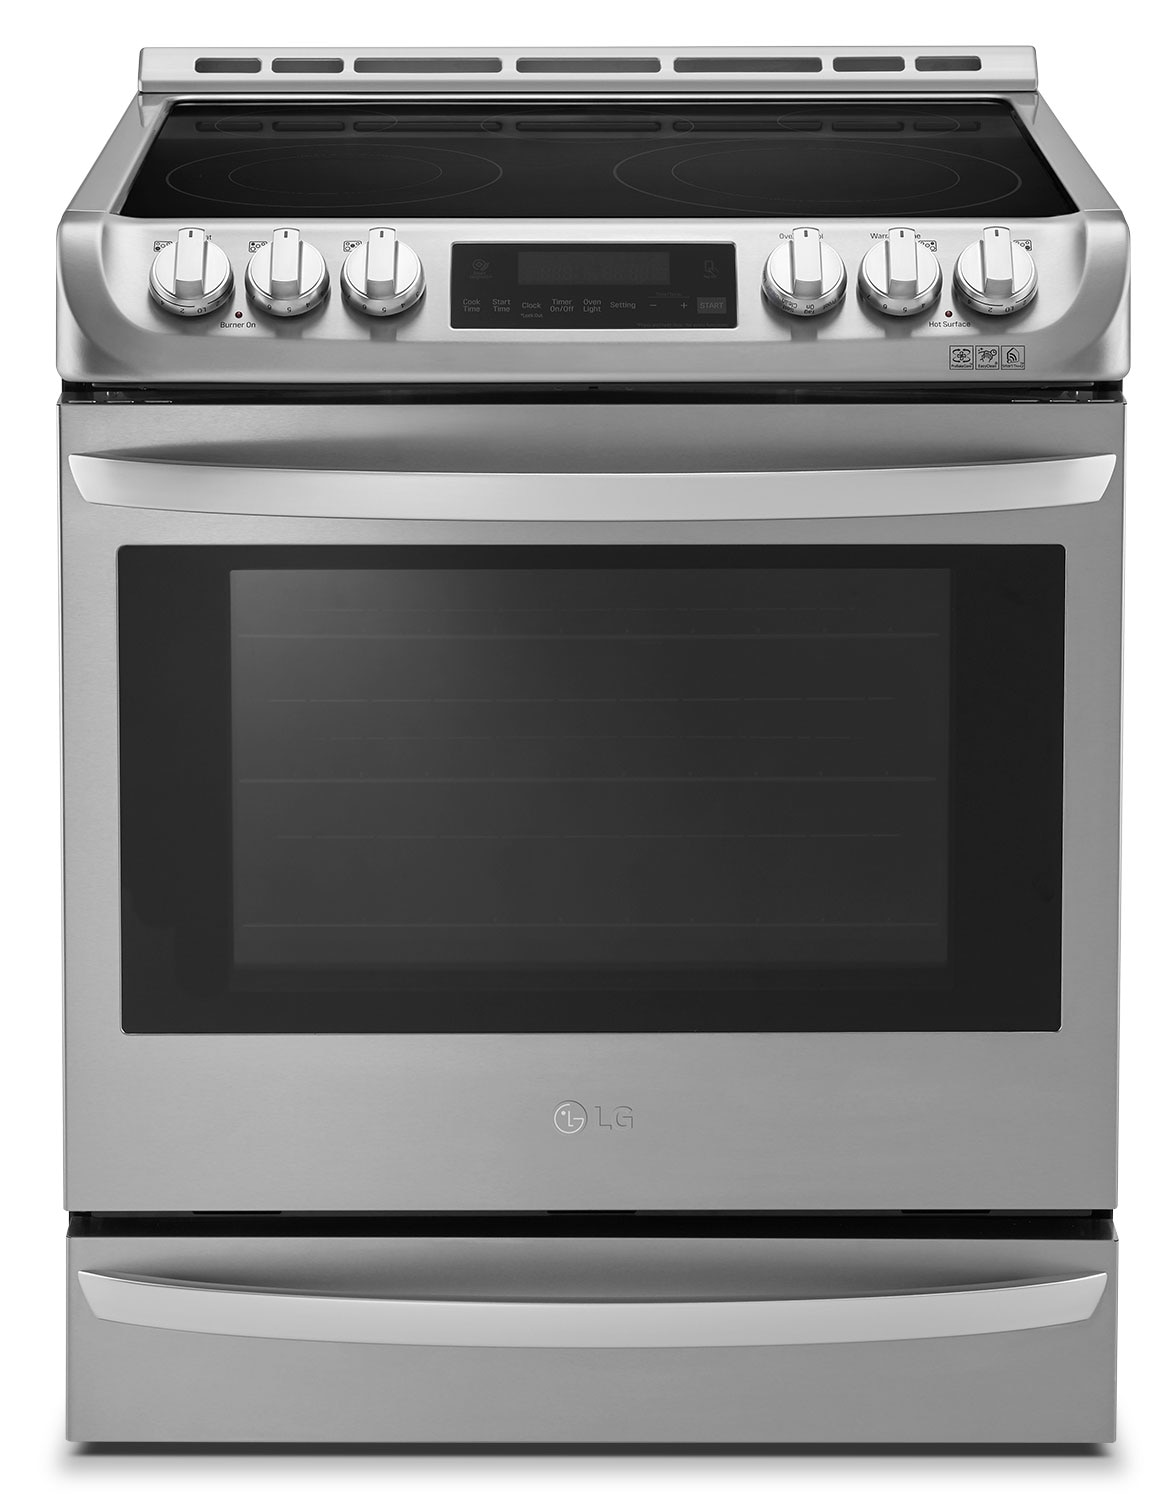 Cooking Products - LG Appliances Slide-In Stainless Steel Electric Convection Range (6.3 Cu. Ft.) - LSE5613ST